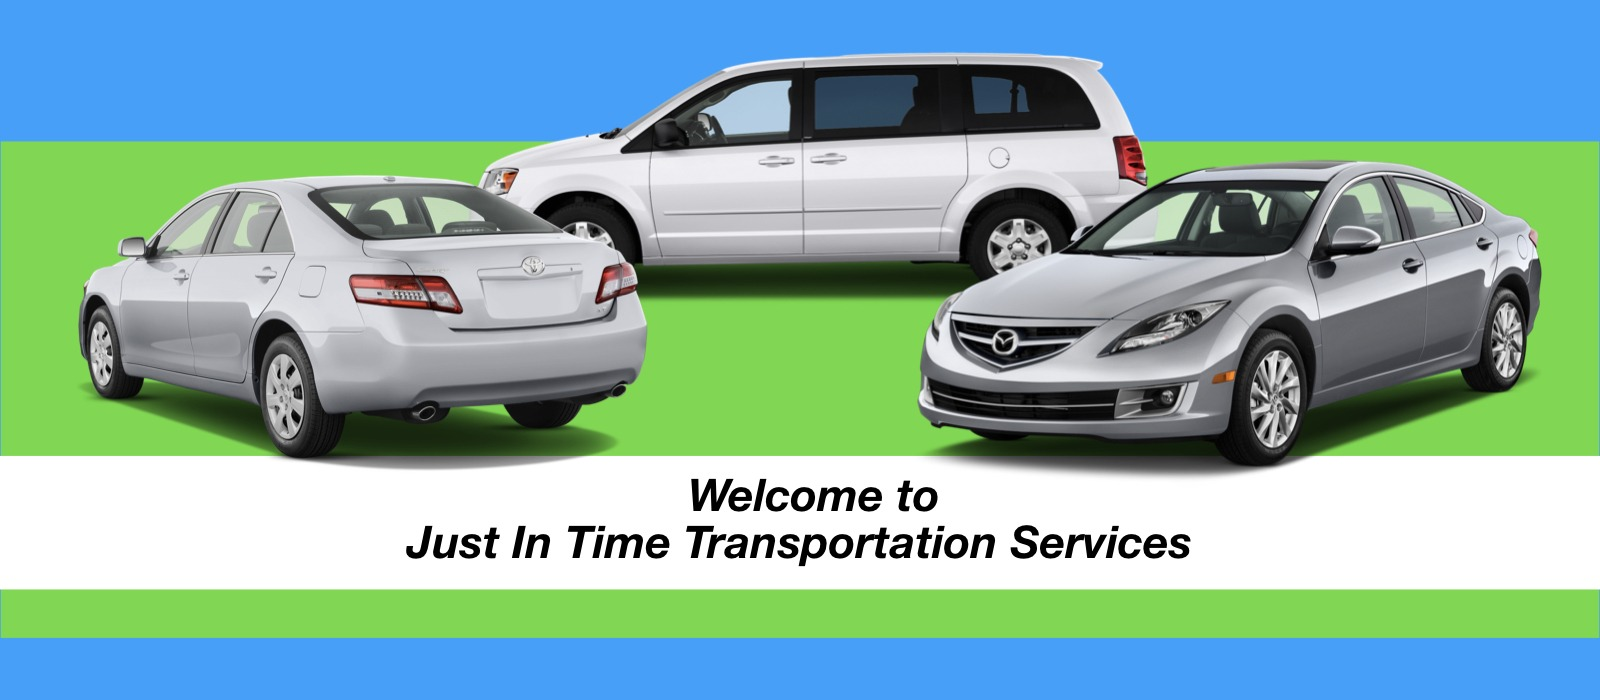 WELCOME TO Just In Time Transportation Services